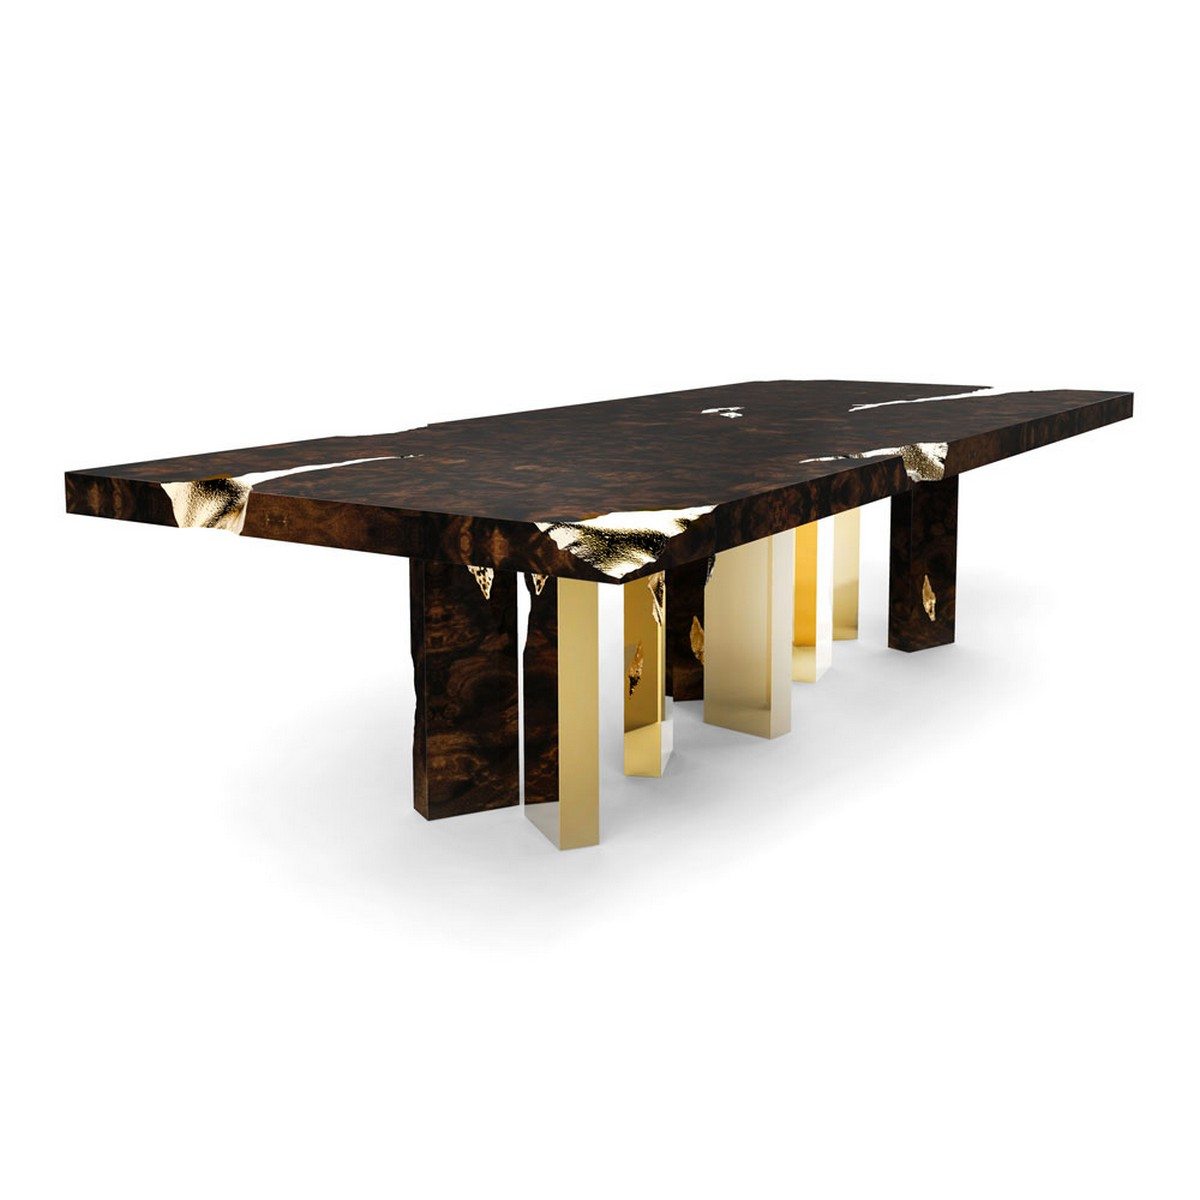 Covet Outlet: New Dining Table Entries dining table Covet Outlet: New Dining Table Entries empire 1